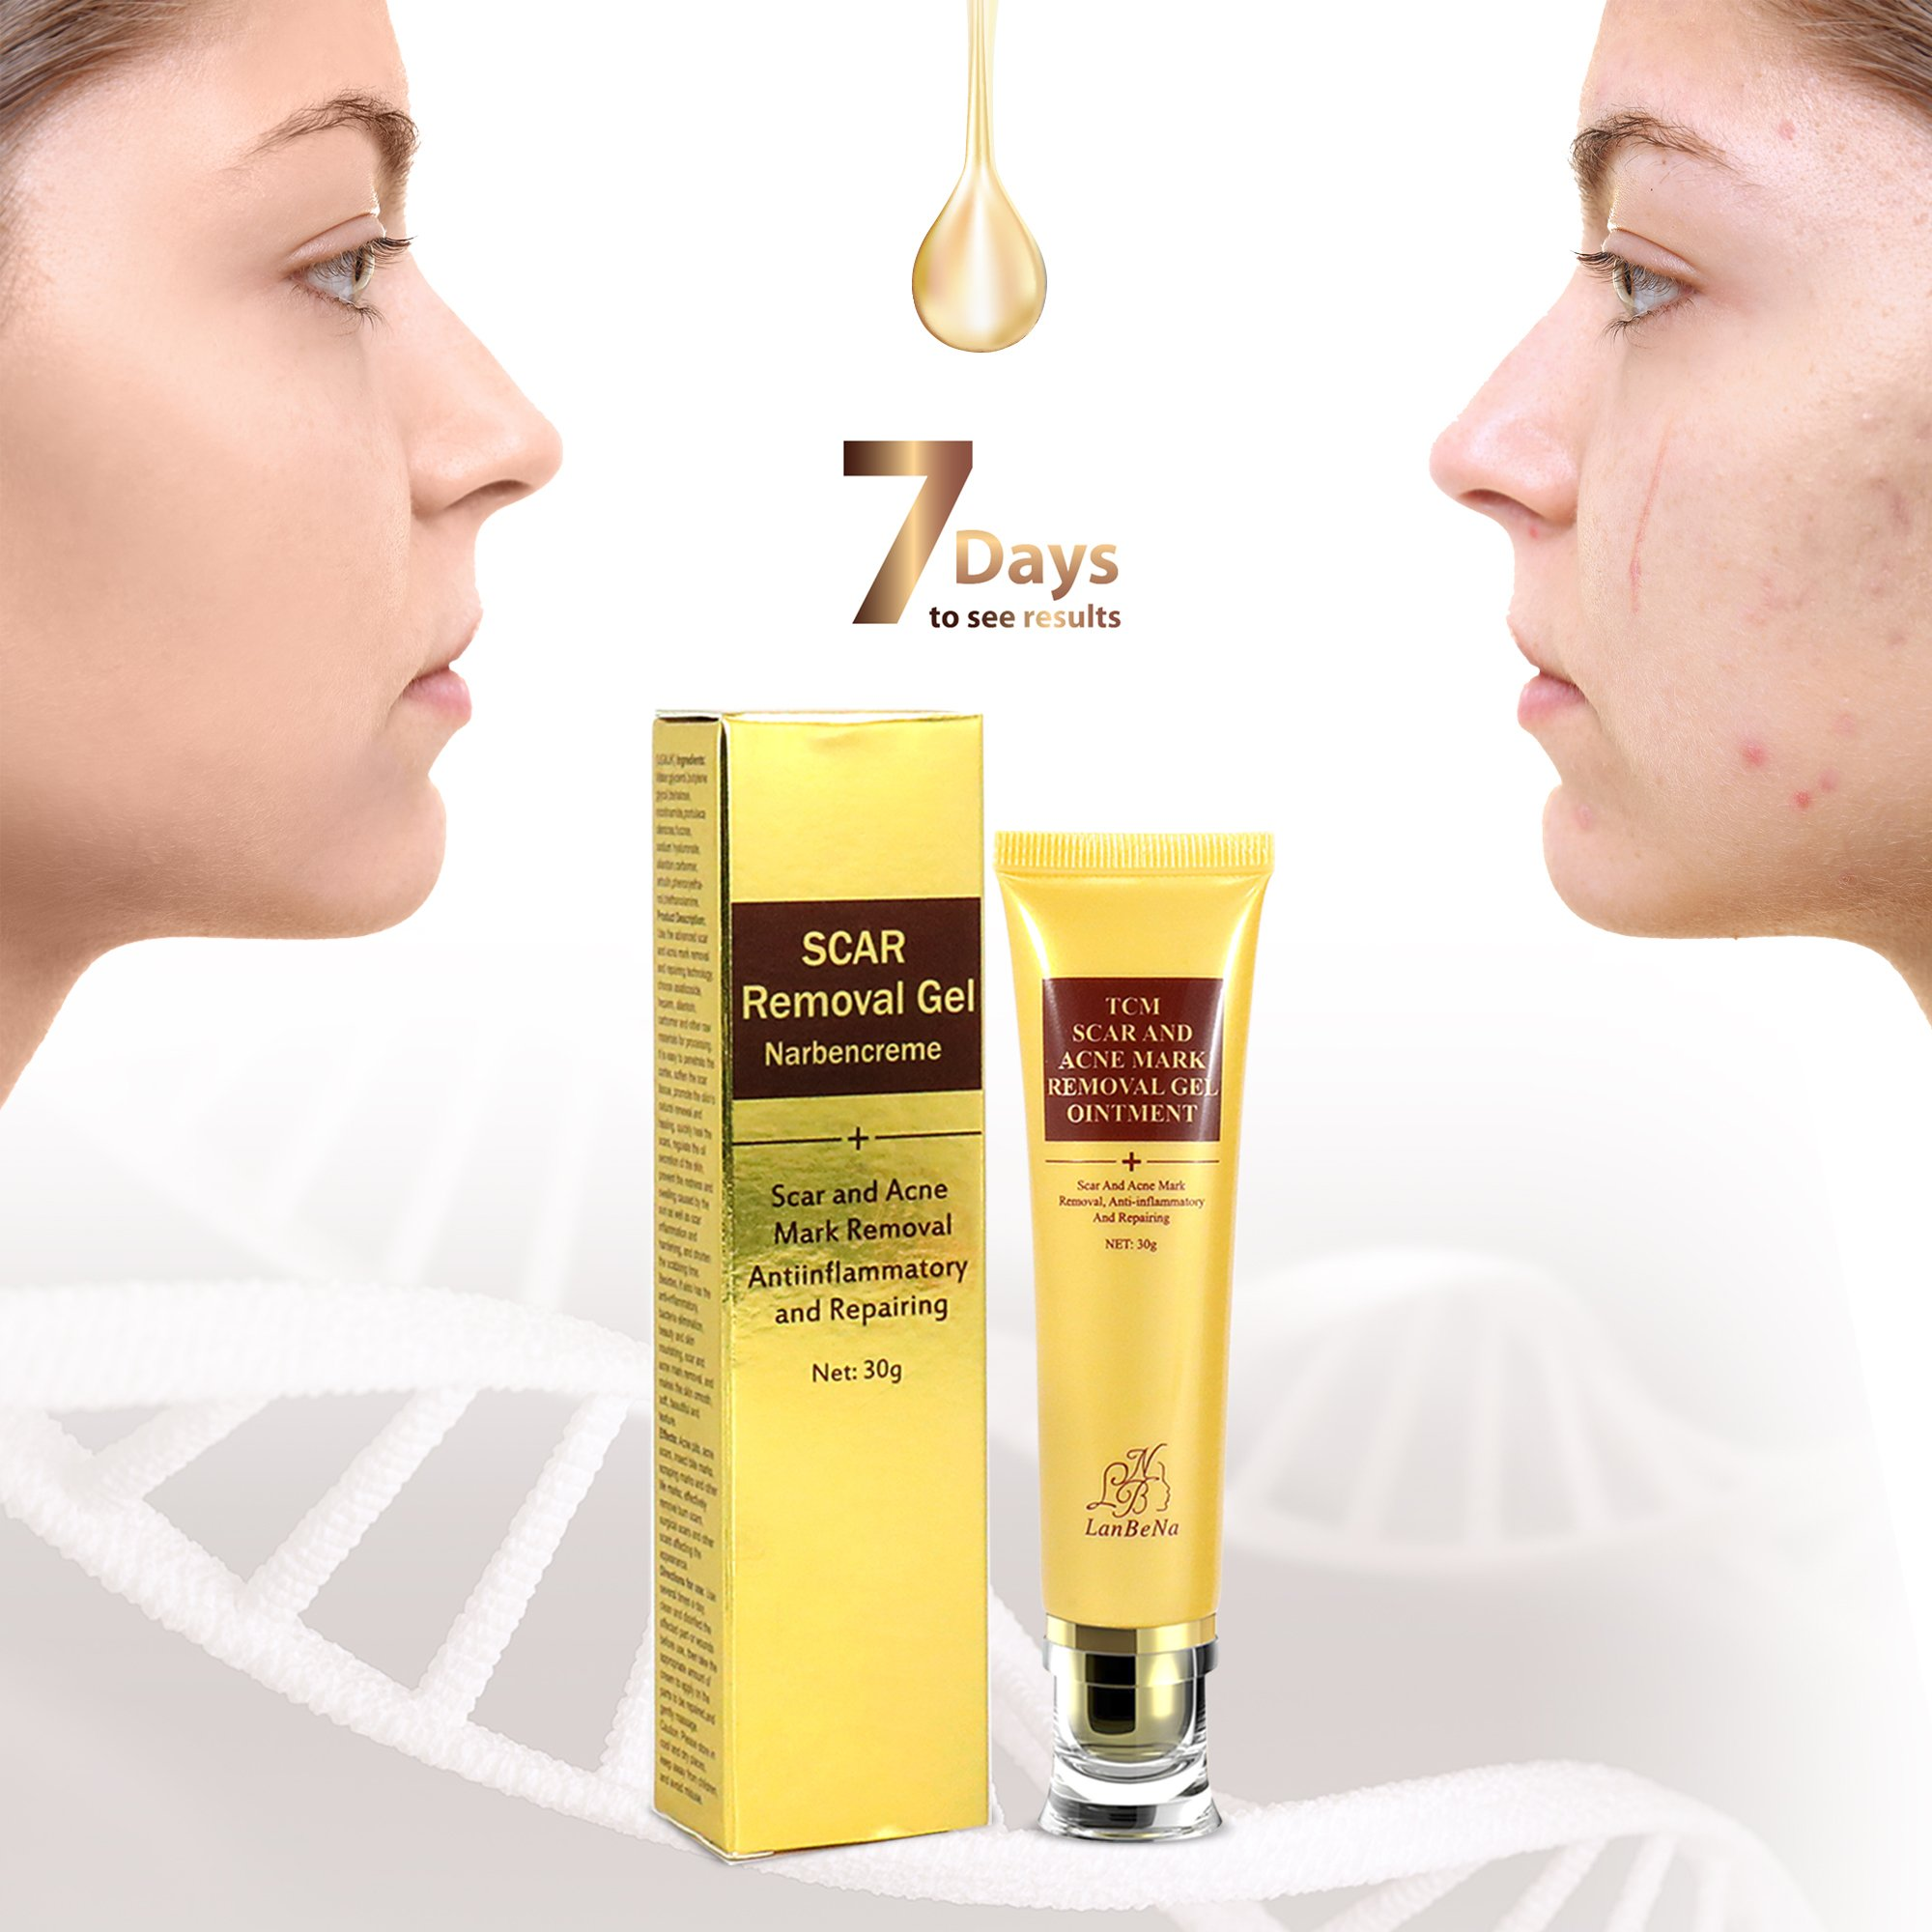 Scar Revomal Cream Treatment Serum - Scar Away Gel for Boby Face Burns C Section Old Scar Surgical Scars - 100% Proven Safe, Effective, No Skin Discoloration, No Side Effects for Man Woman